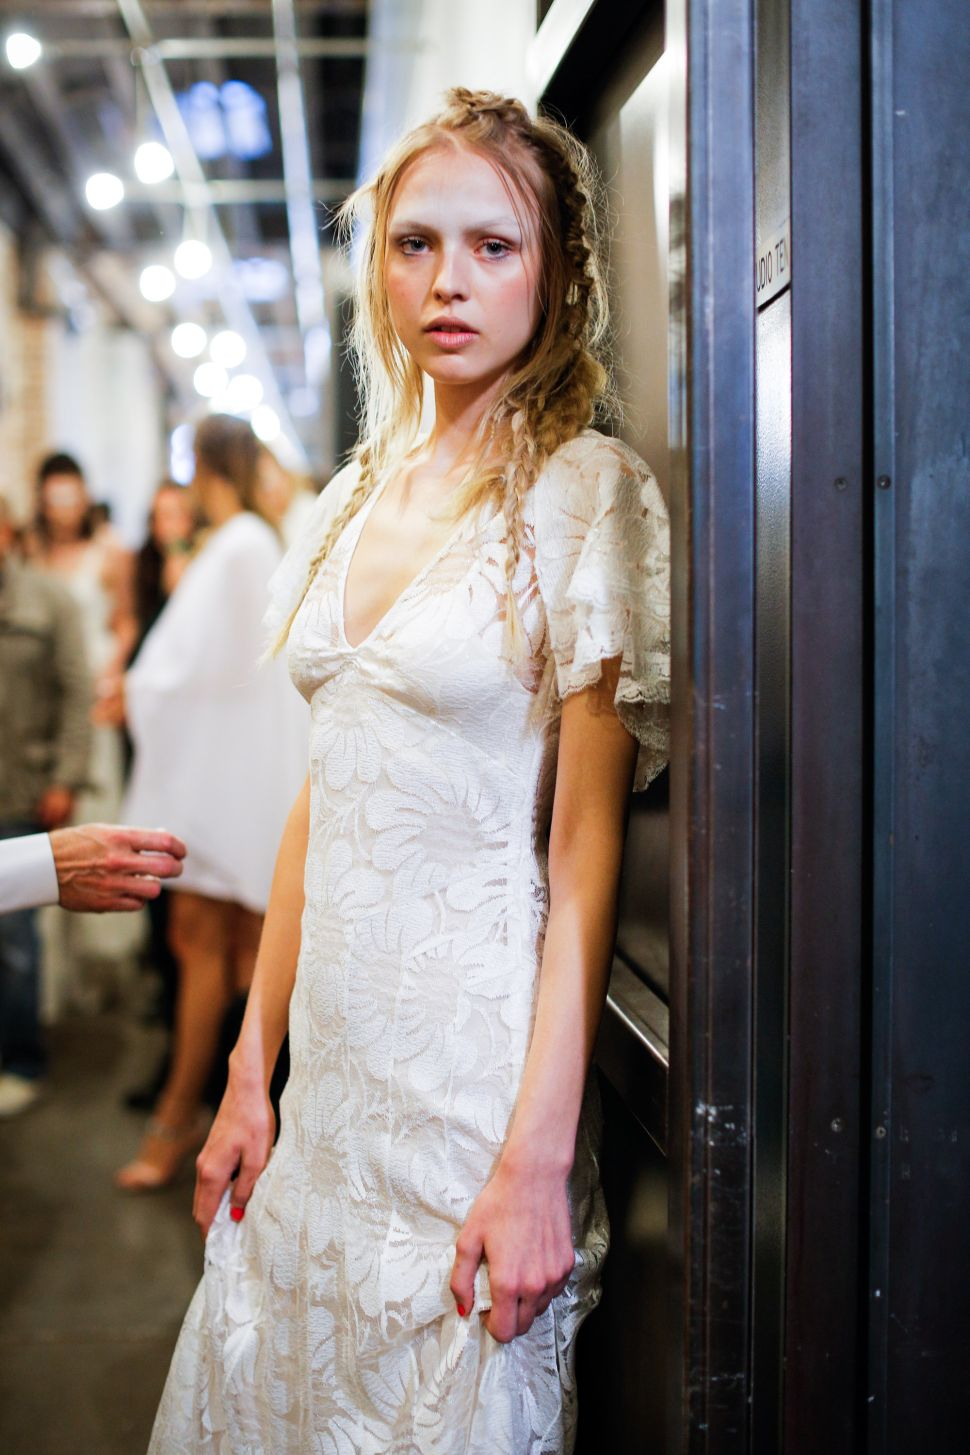 See Now, Buy Now Concept Expands to the Bridal Market